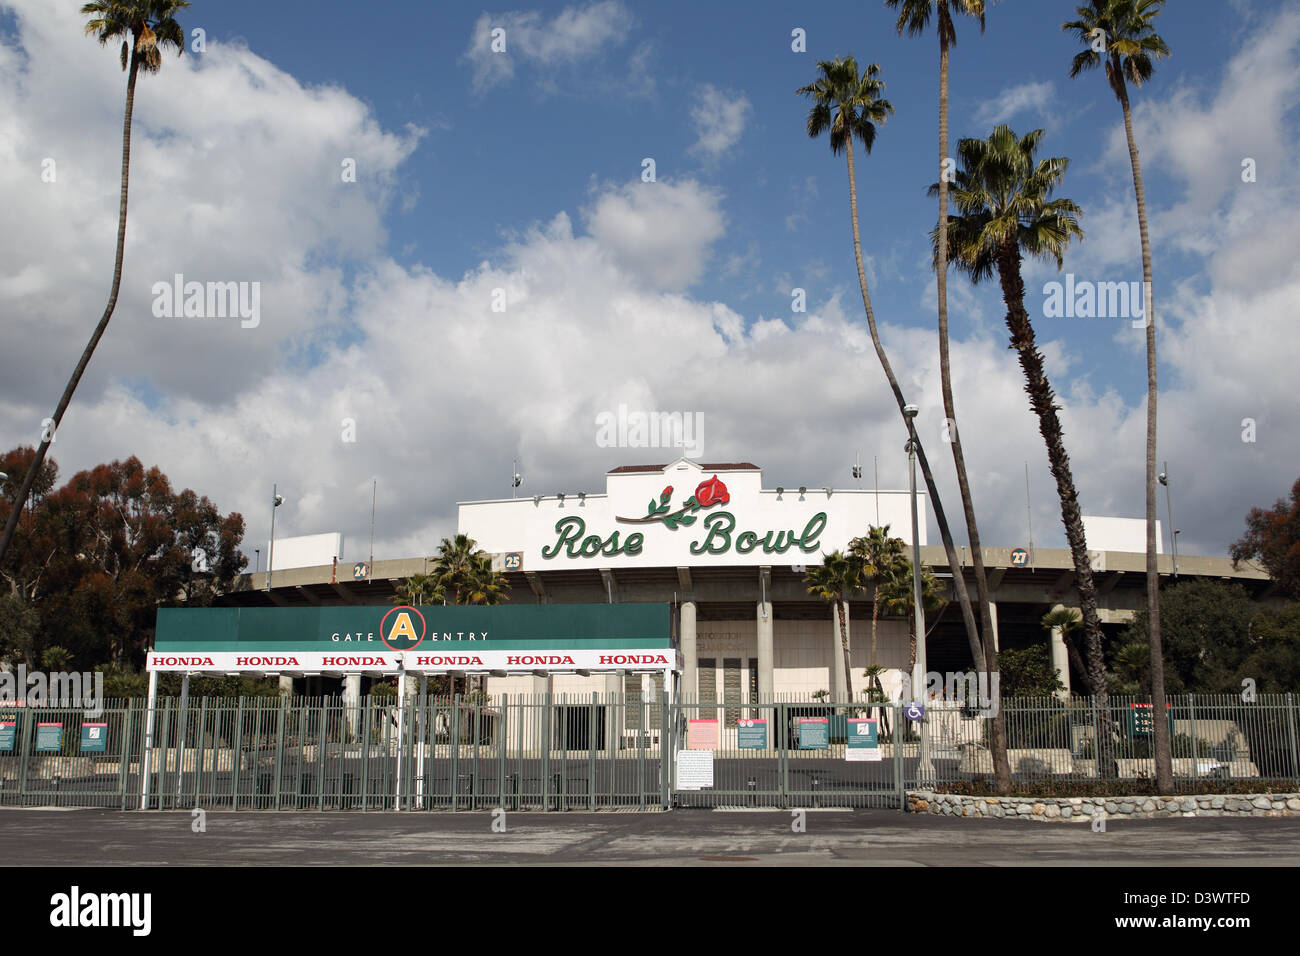 PASADENA, CA - FEBRUARY 21 : A view of the Rose Bowl stadium entrance on February 21, 2012. - Stock Image